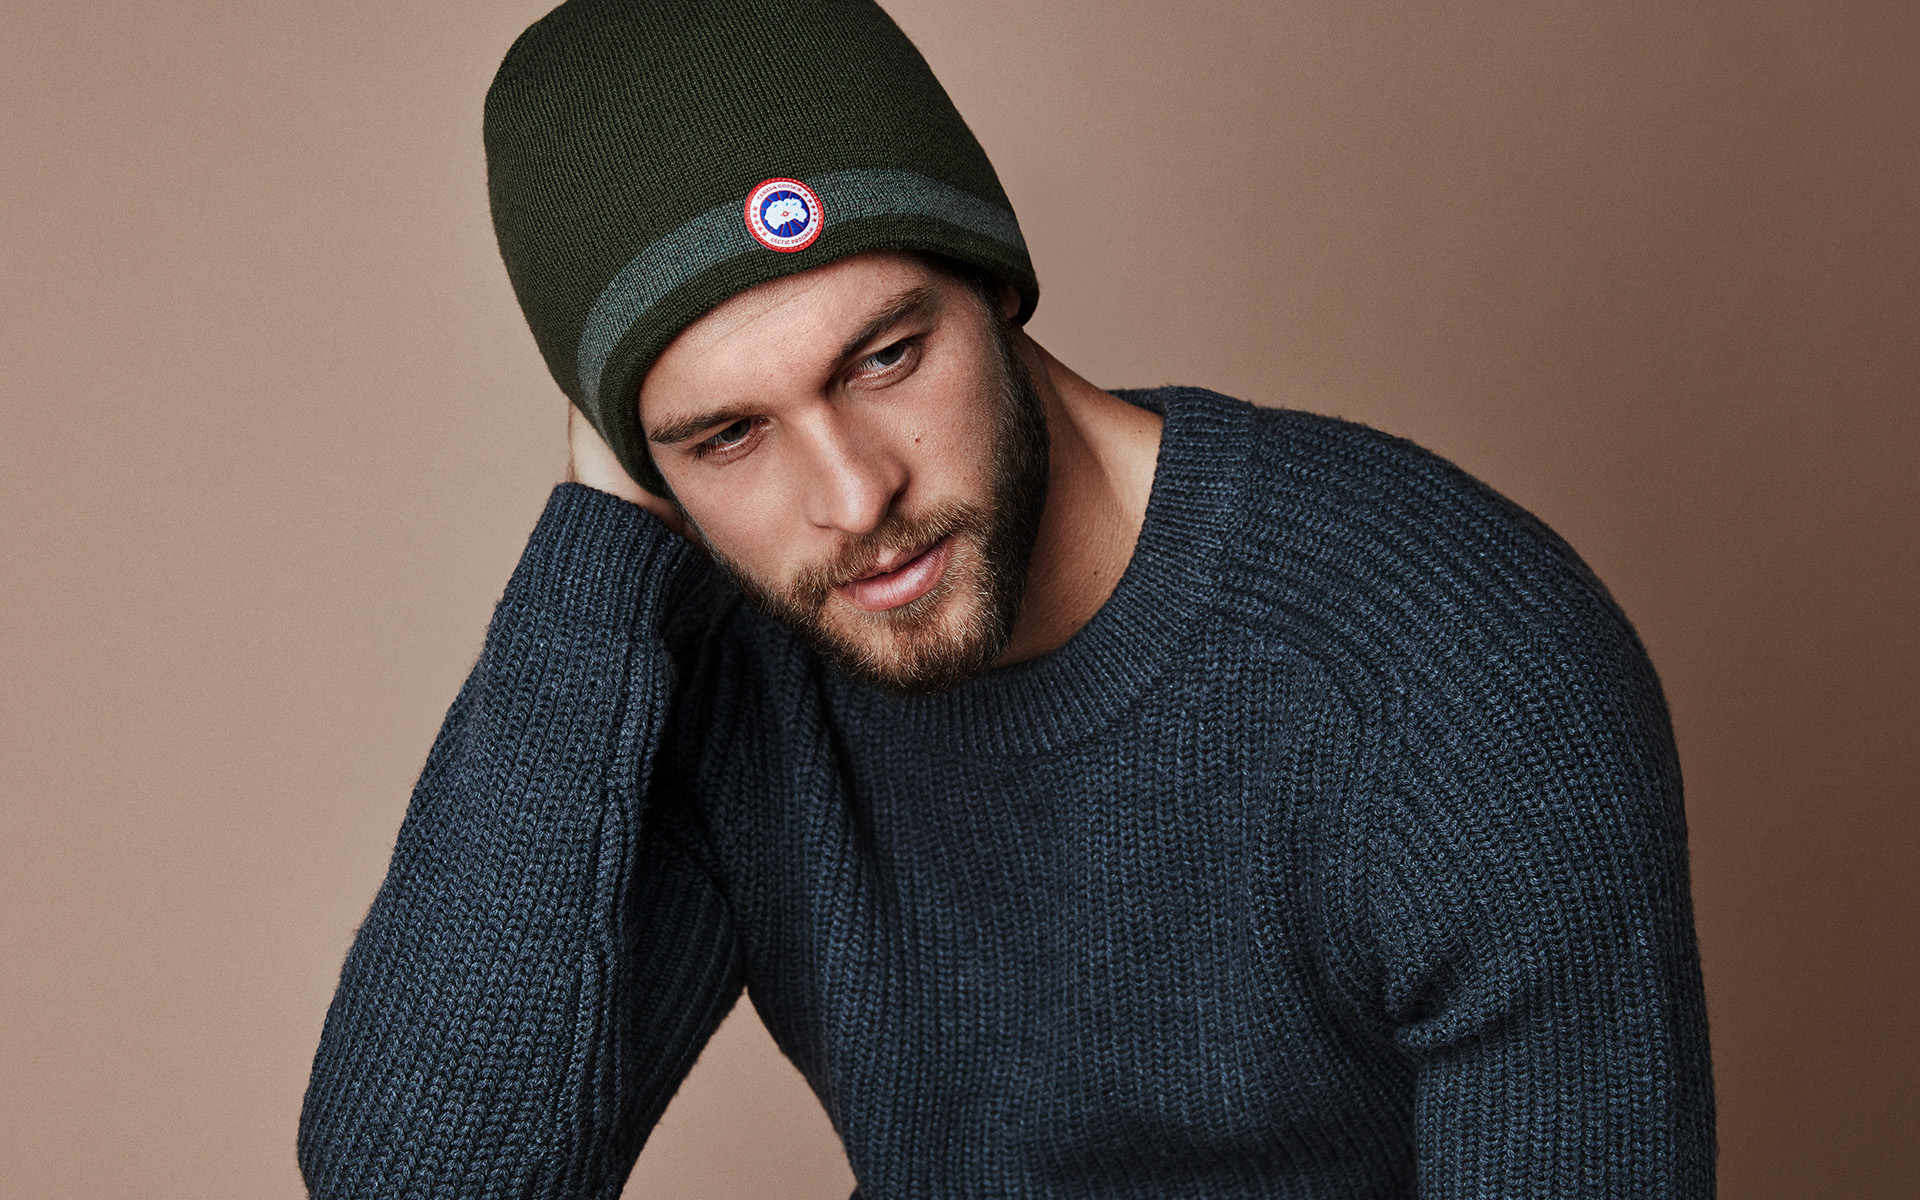 Canada Goose Merino Wool Beanie Review - fortyninegroup cc6f440a565